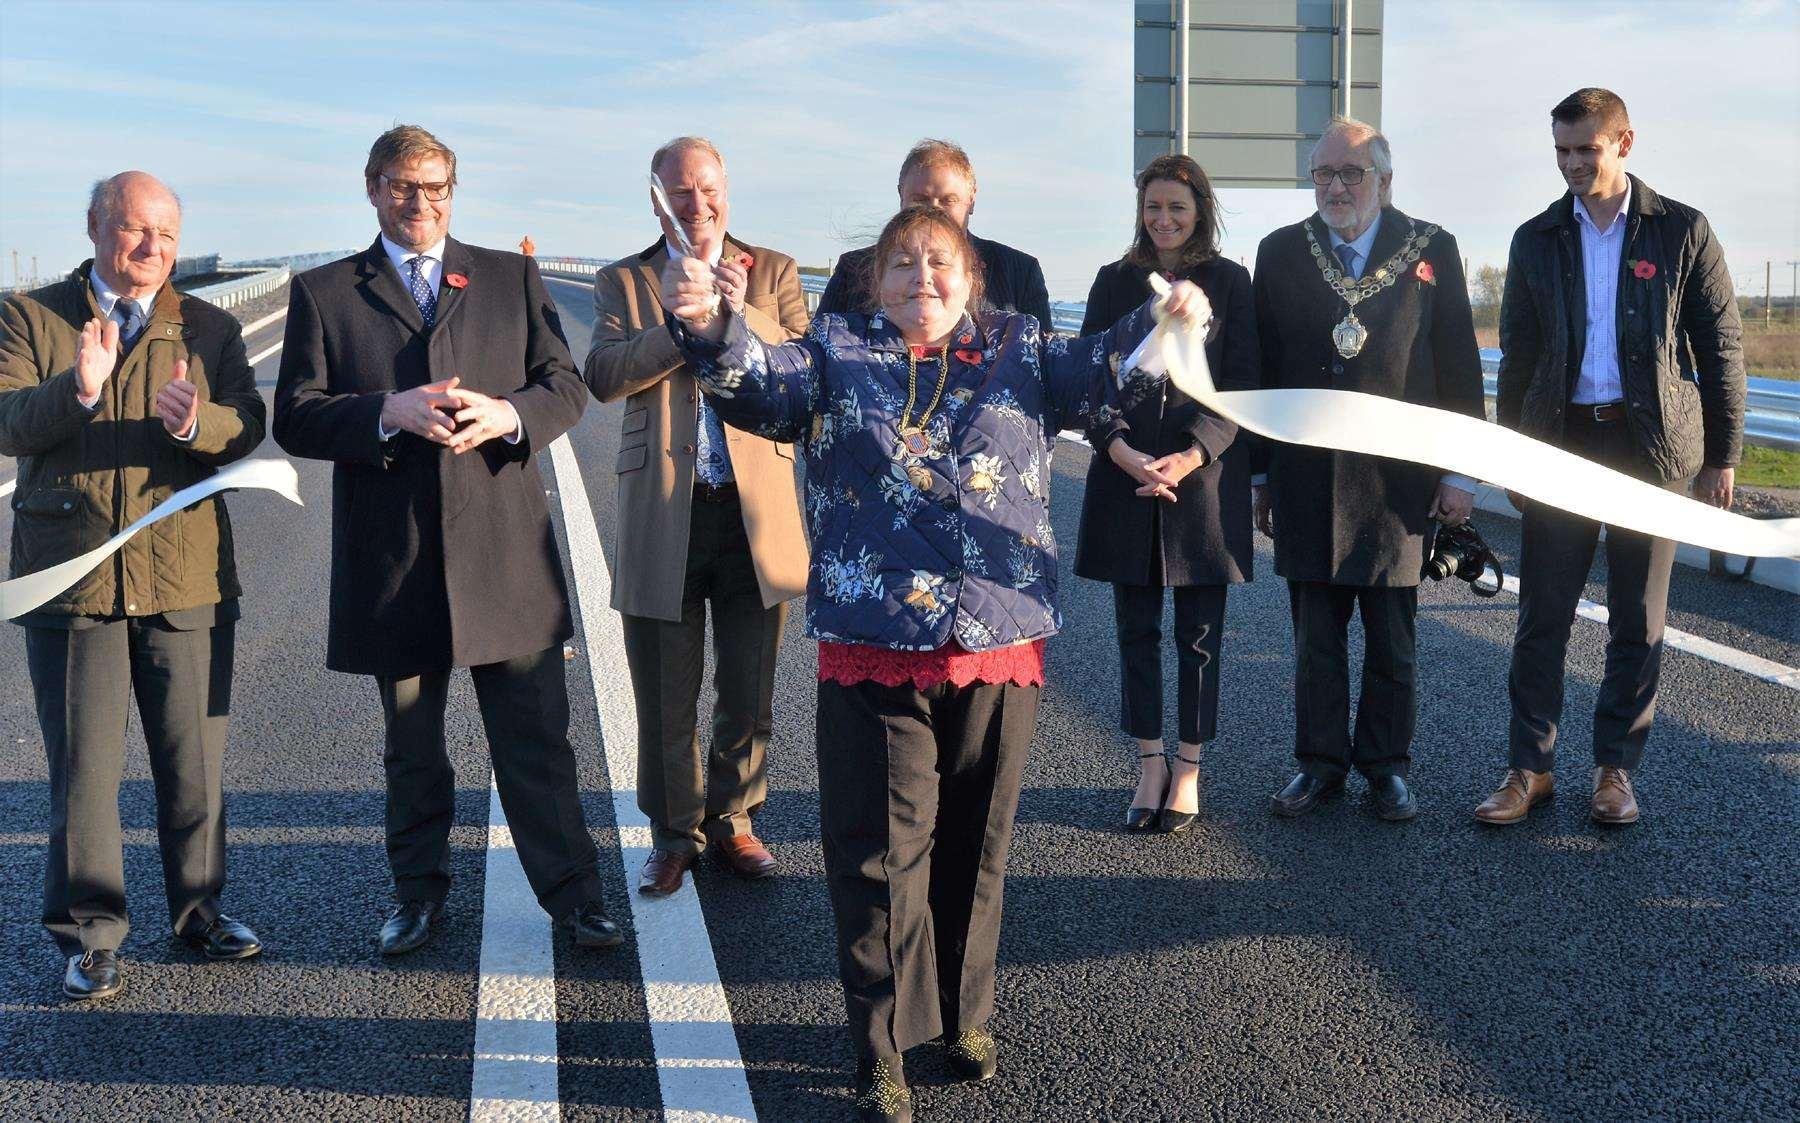 Ely by-pass opening (5146418)